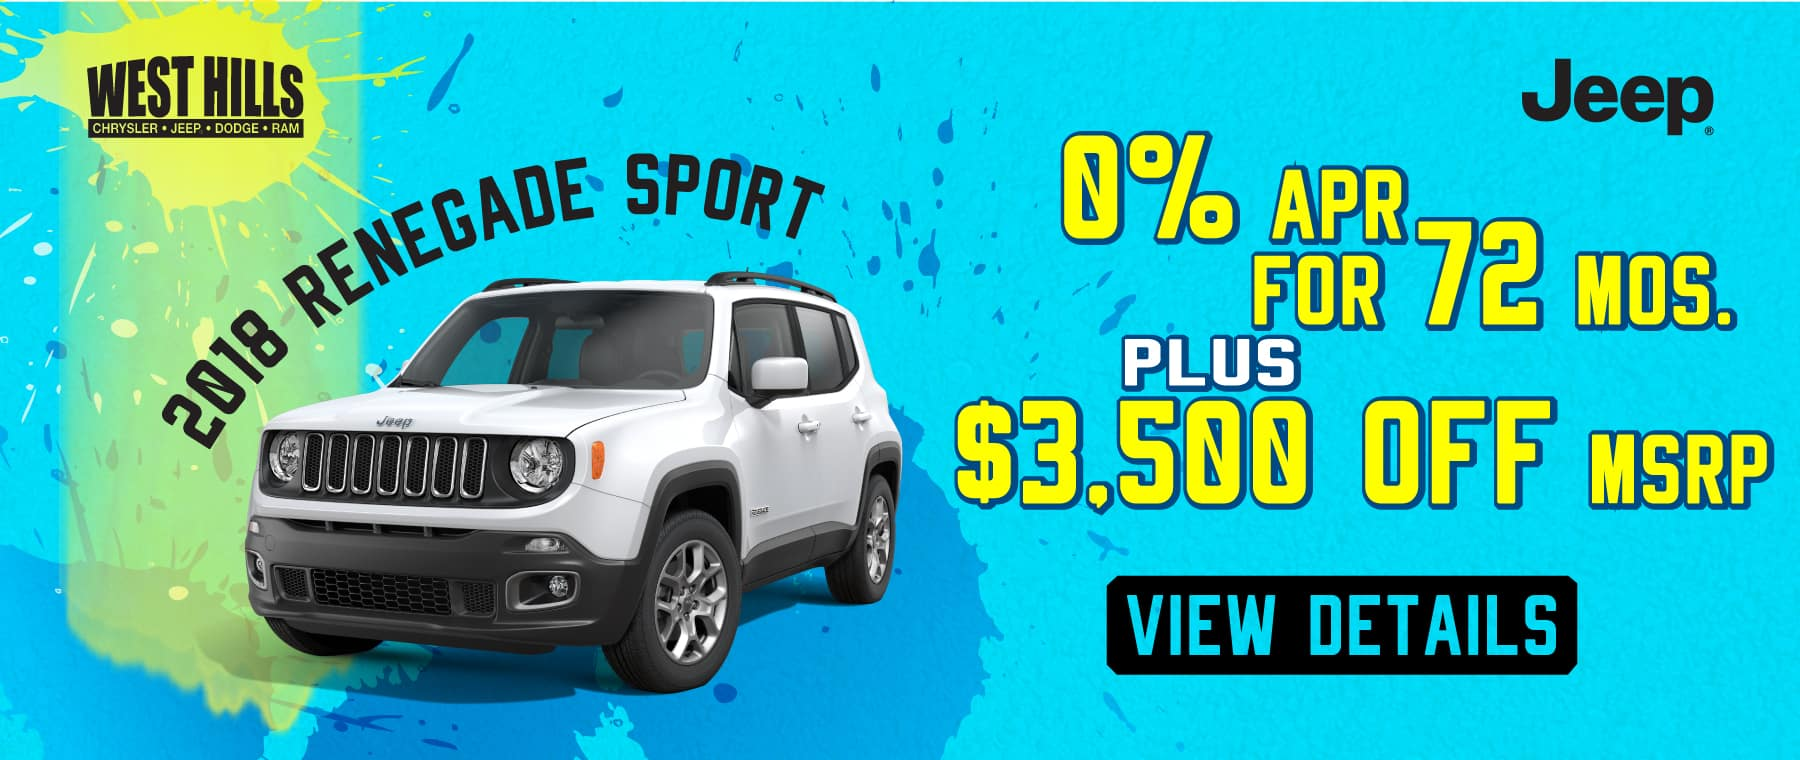 2018 Jeep Renegade Sport  0% APR for 72 mos + $3,500 off MSRP.*